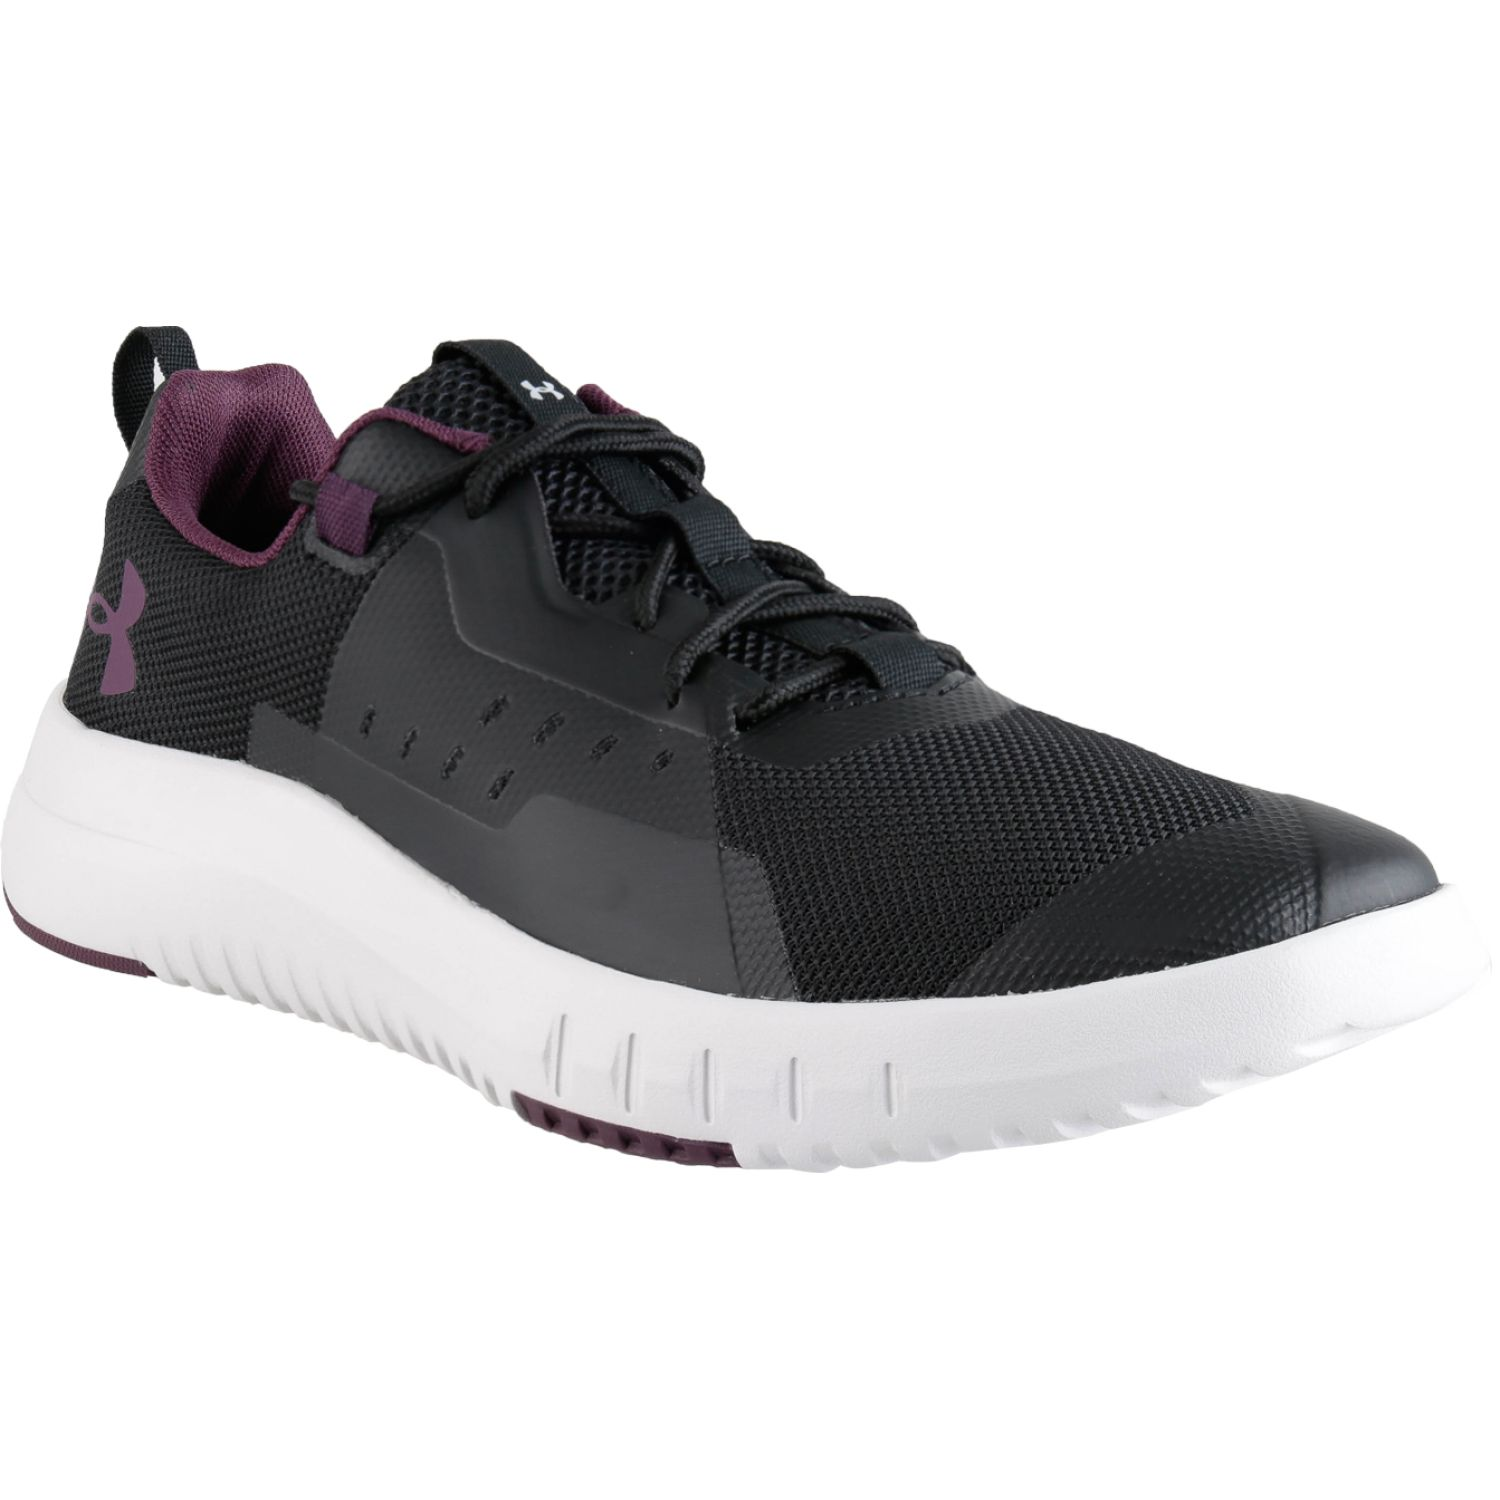 Under Armour UA TR96 Negro / blanco Hombres